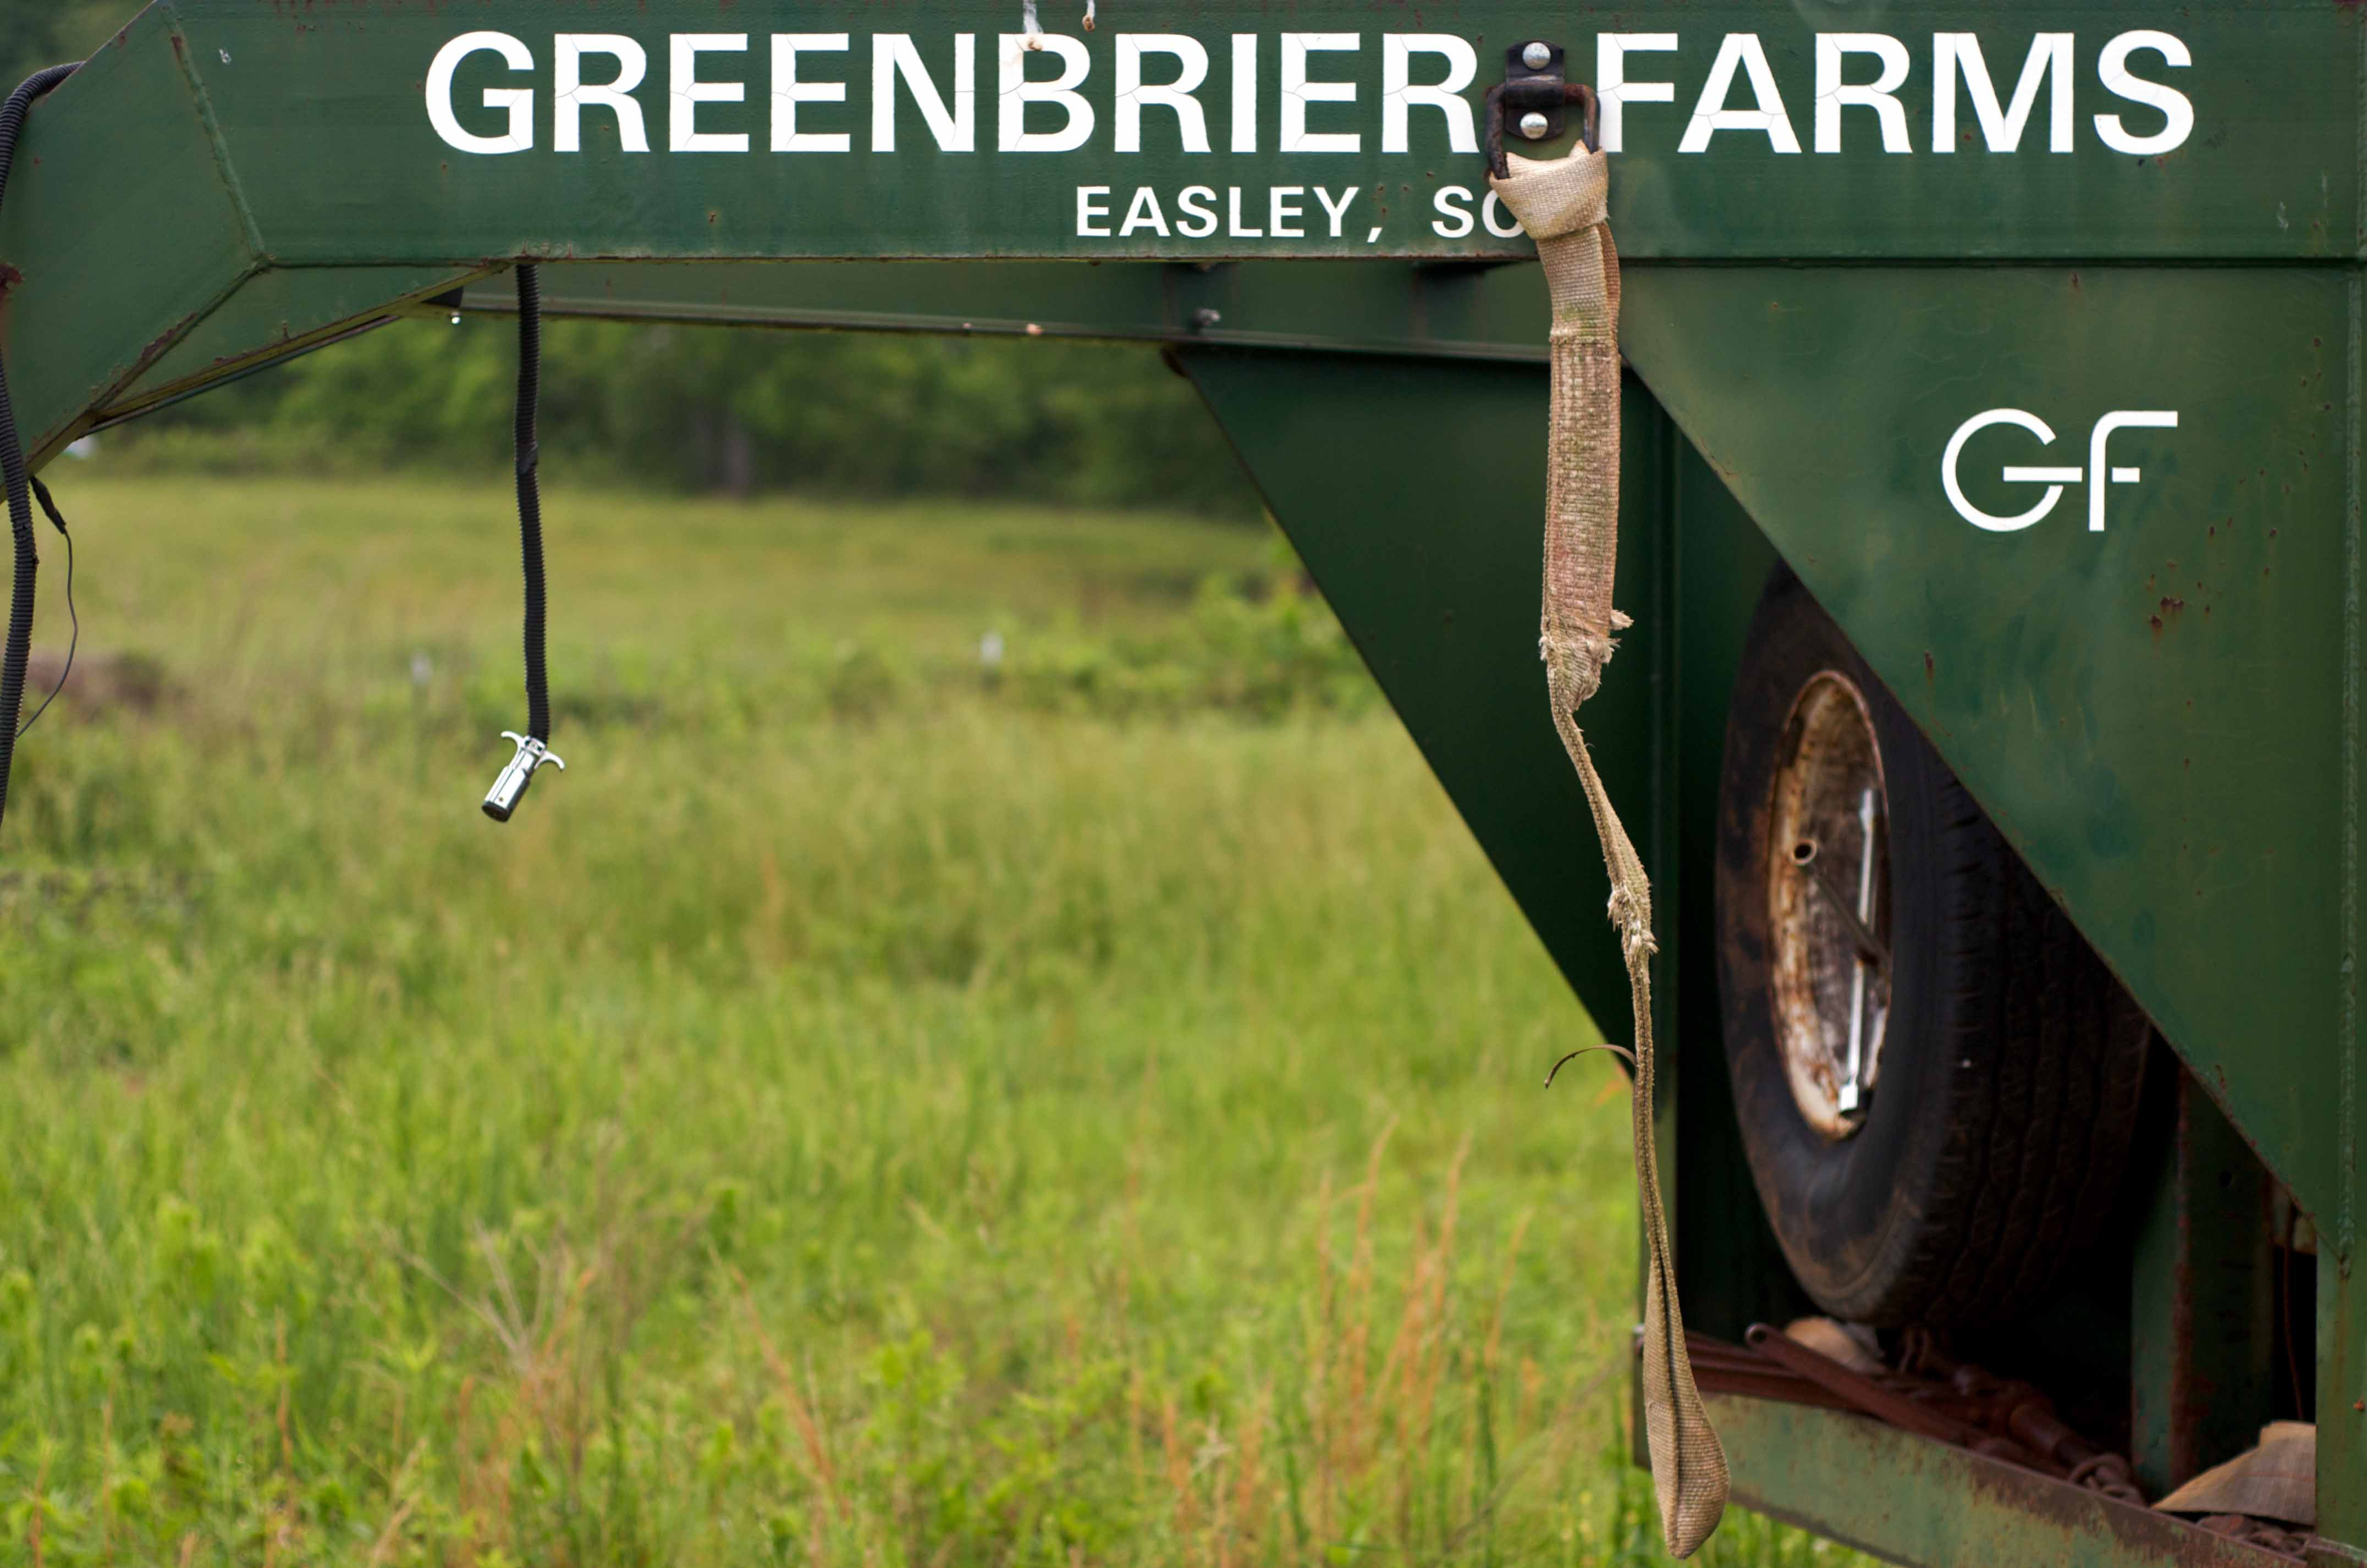 DHG IMPACT - Sustainability at Greenbrier Farms